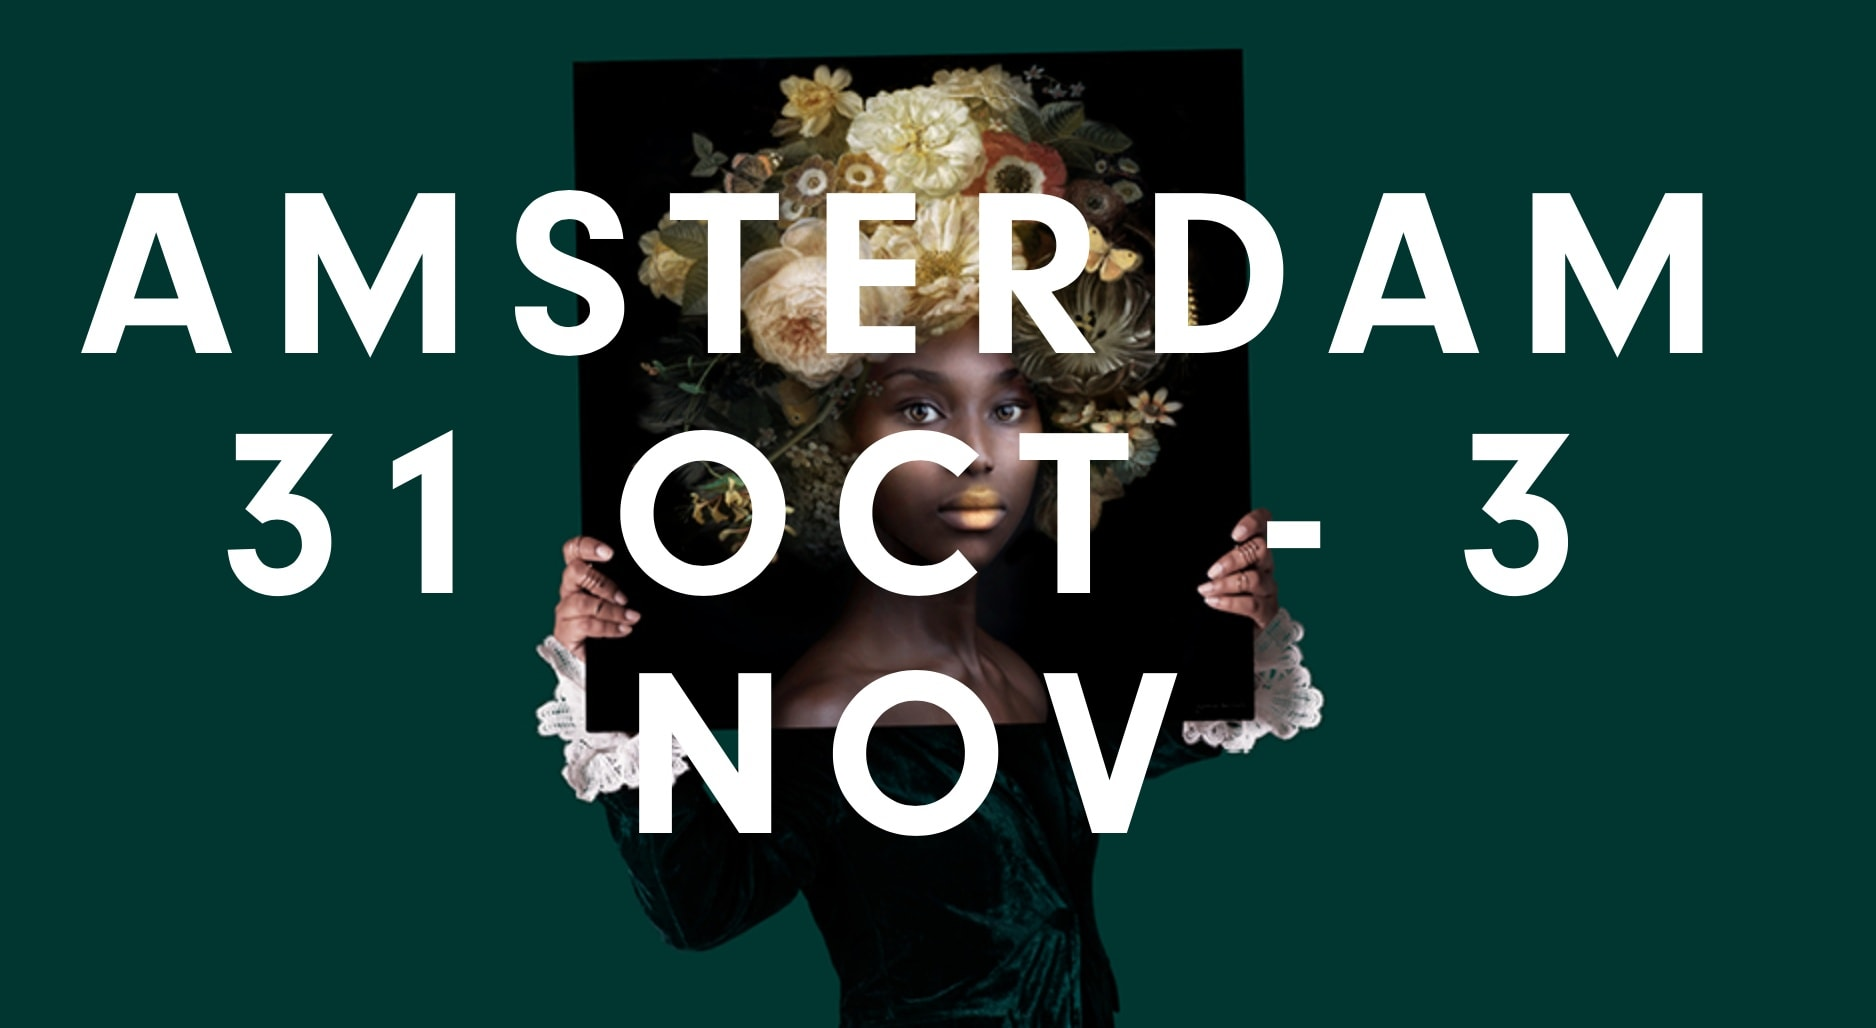 AFFORDABLE ART FAIR: Amsterdam